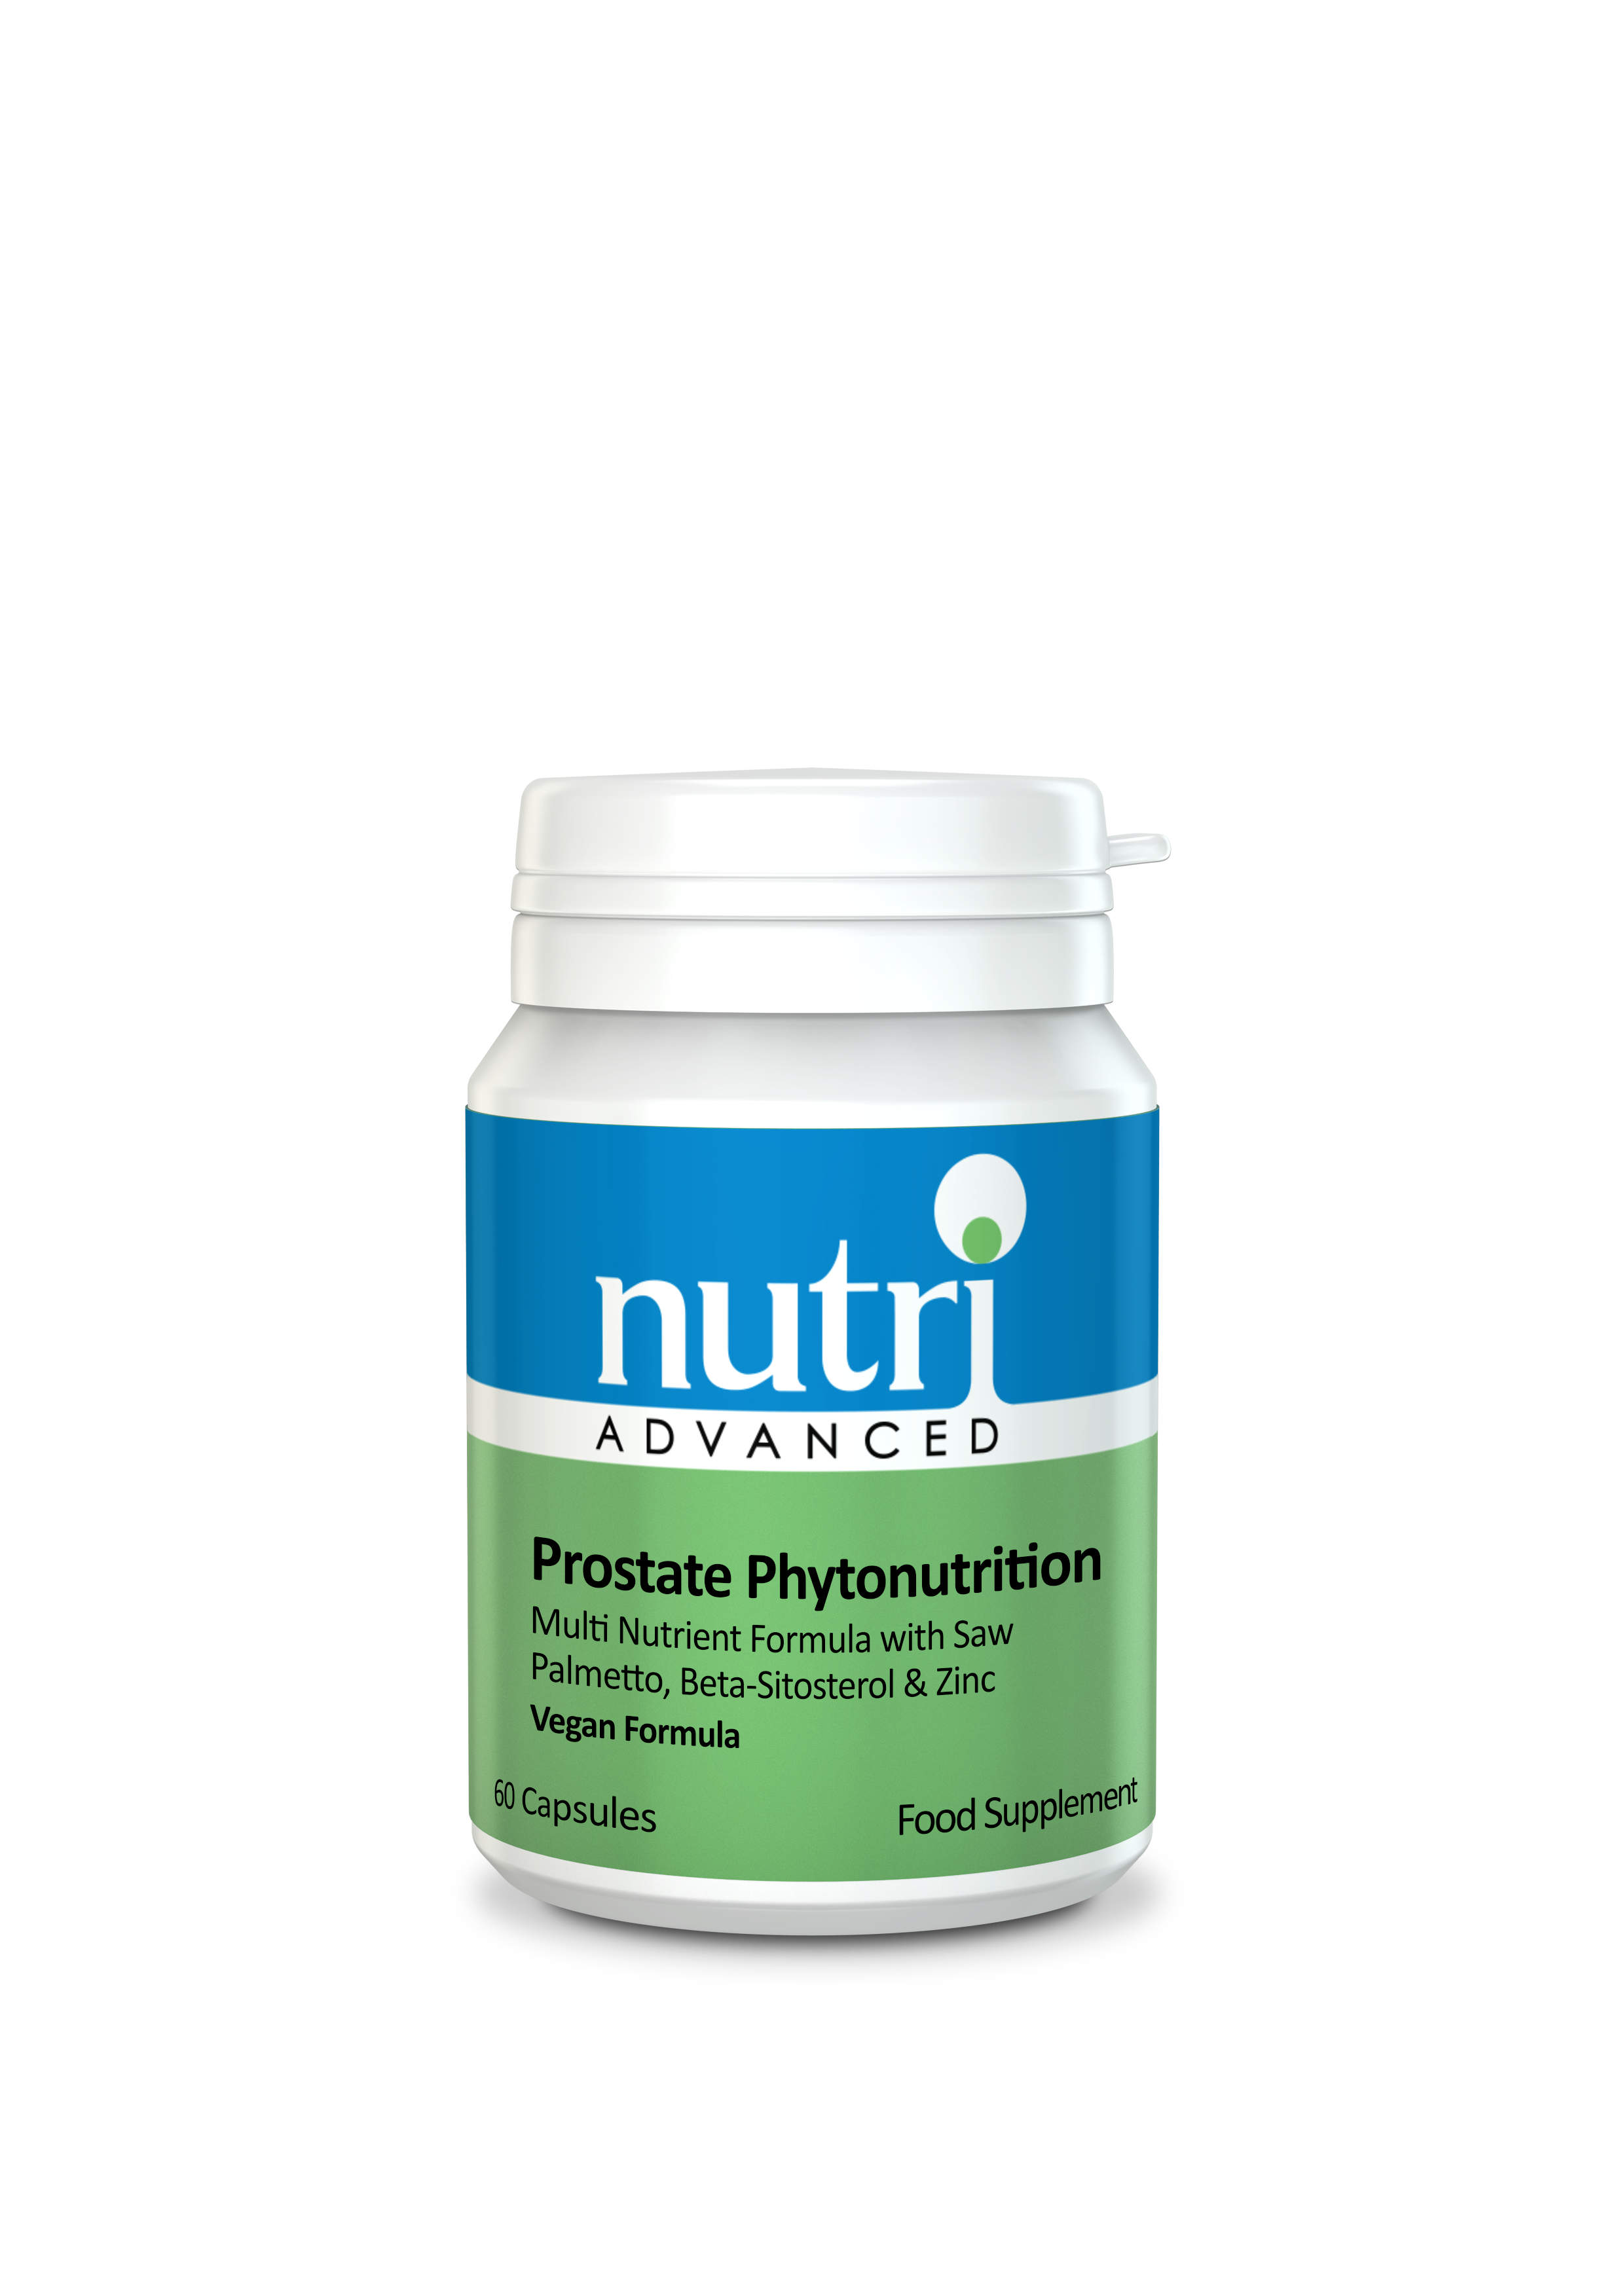 Nutri Advanced Prostate Phytonutrition